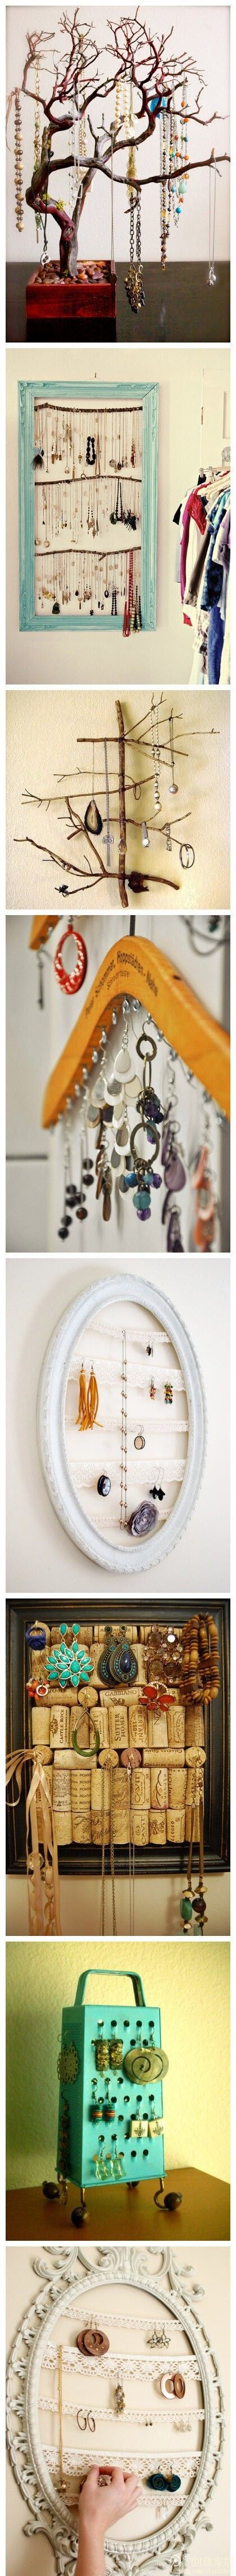 Fun way to organize jewelry instead of tossing them on the dresser and wondering why I can't find anything!  Love the wooden hanger idea.